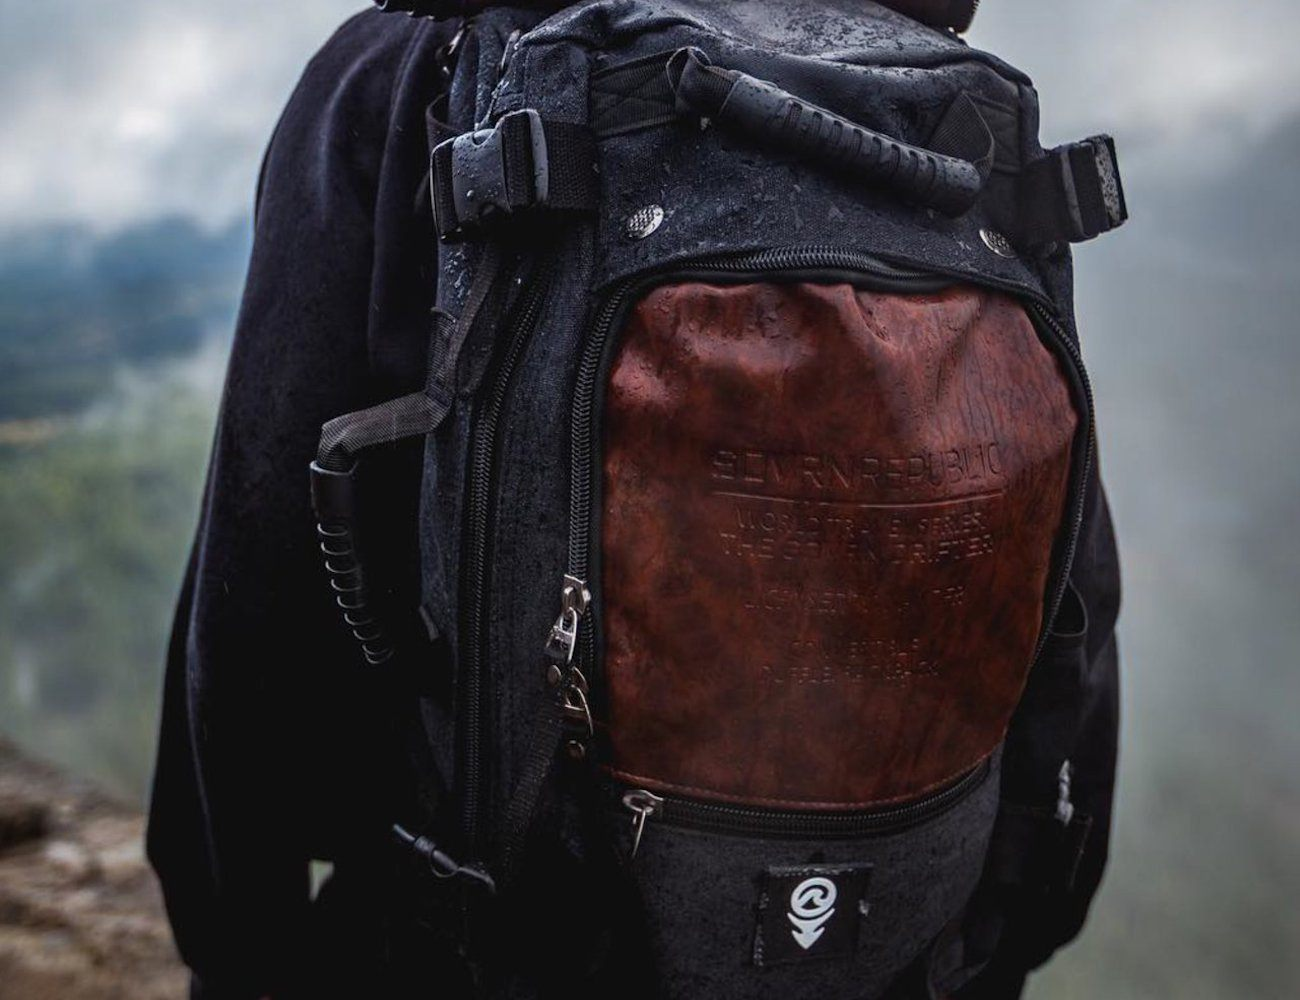 SOVRN Drifter 30L Backpack